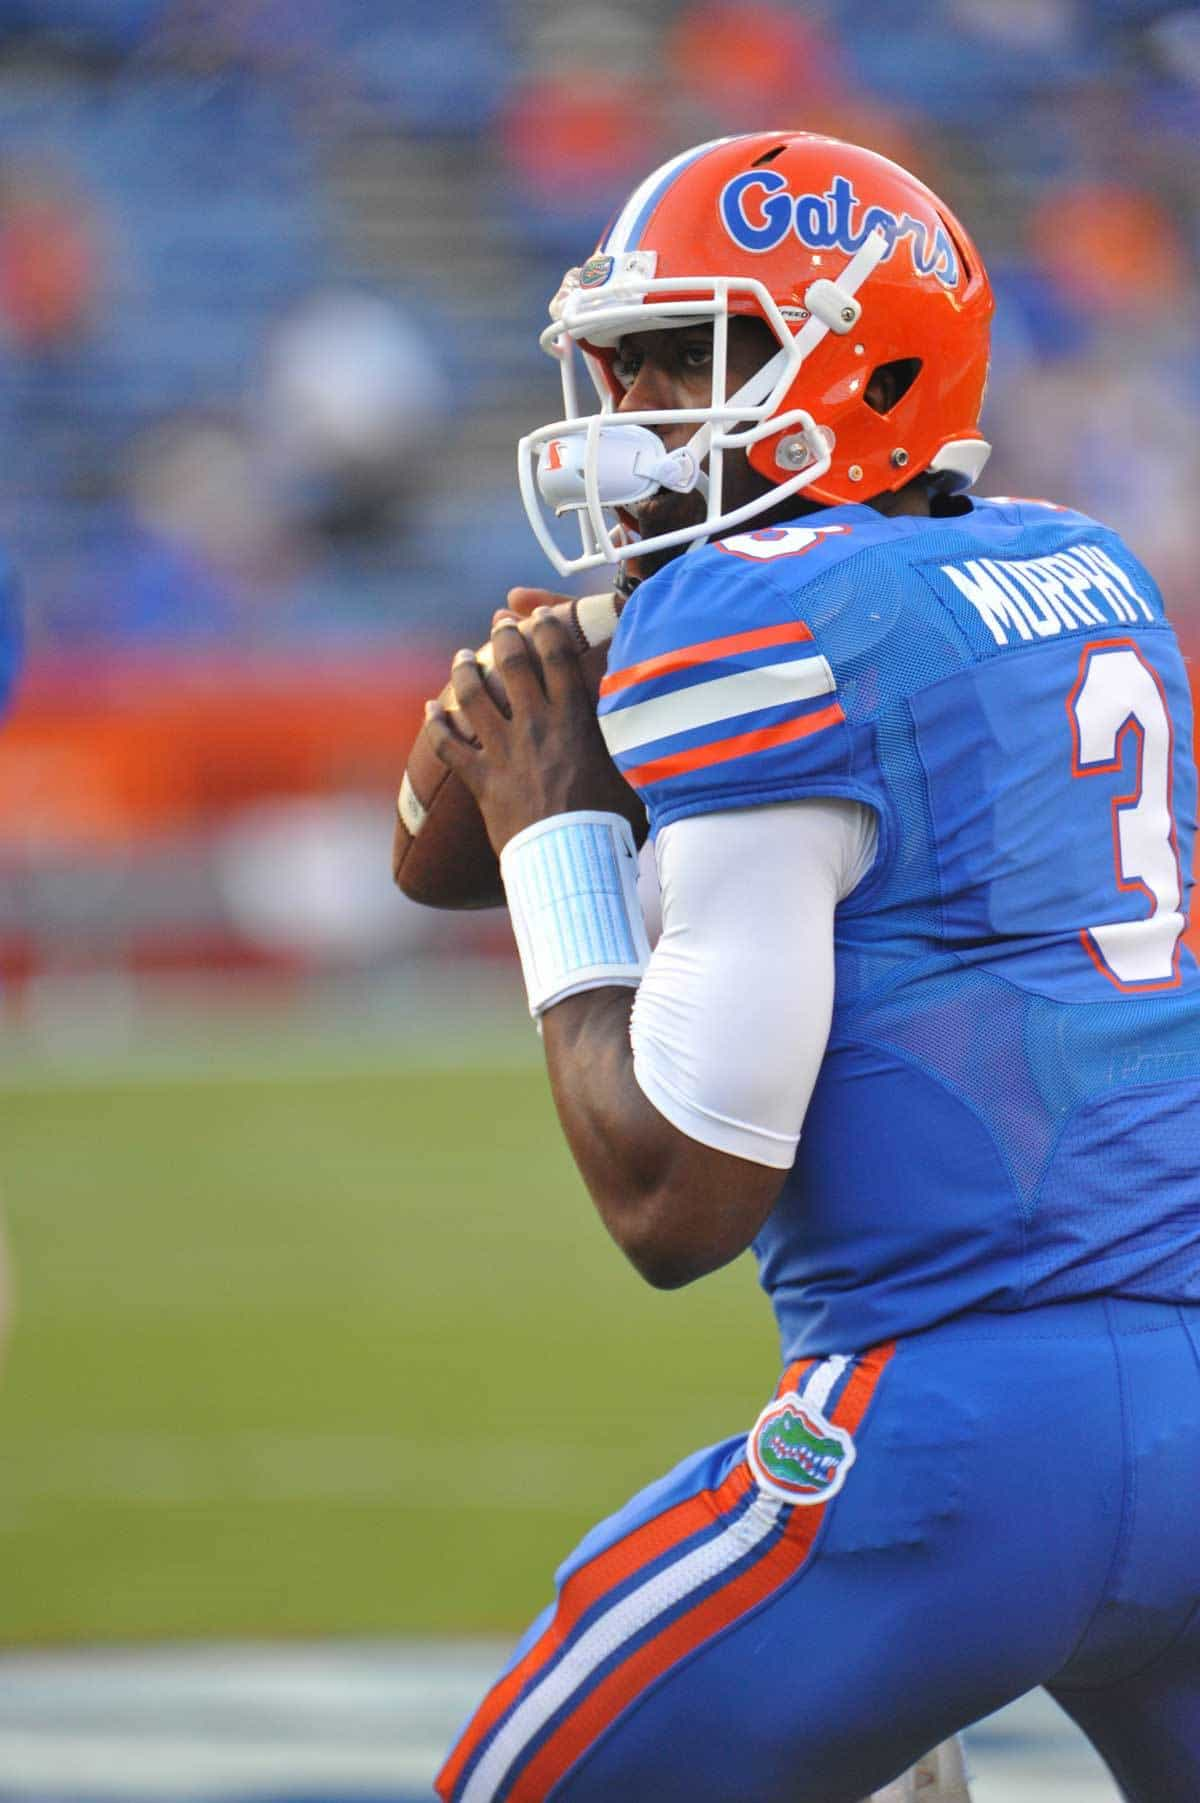 Gator QB Tyler Murphy drops back to pass during warmups for the Arkansas game. Florida Gators vs. Arkansas Razorbacks. October 5th, 2013. Photo: David Bowie